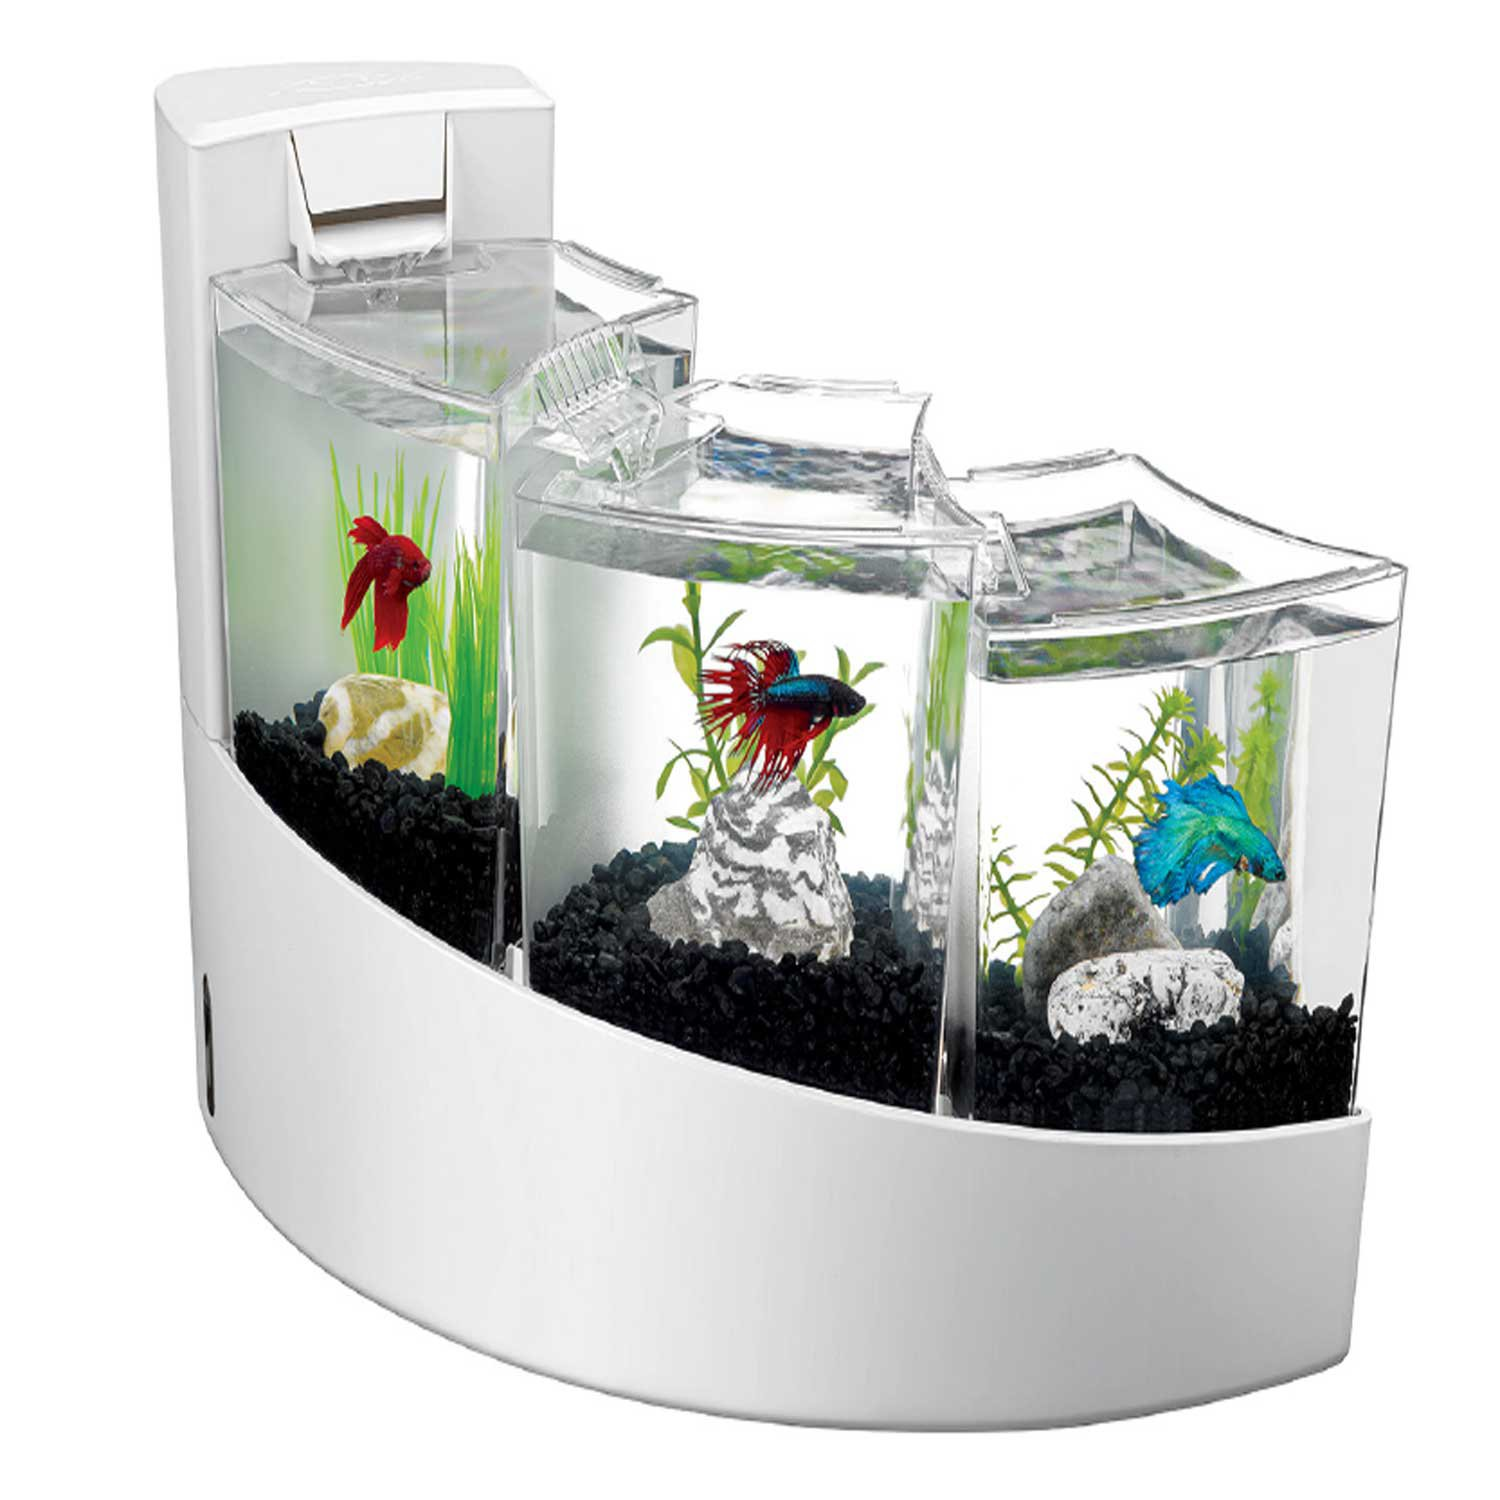 Aqueon betta falls aquarium kit in white petco for Betta fish tanks petco